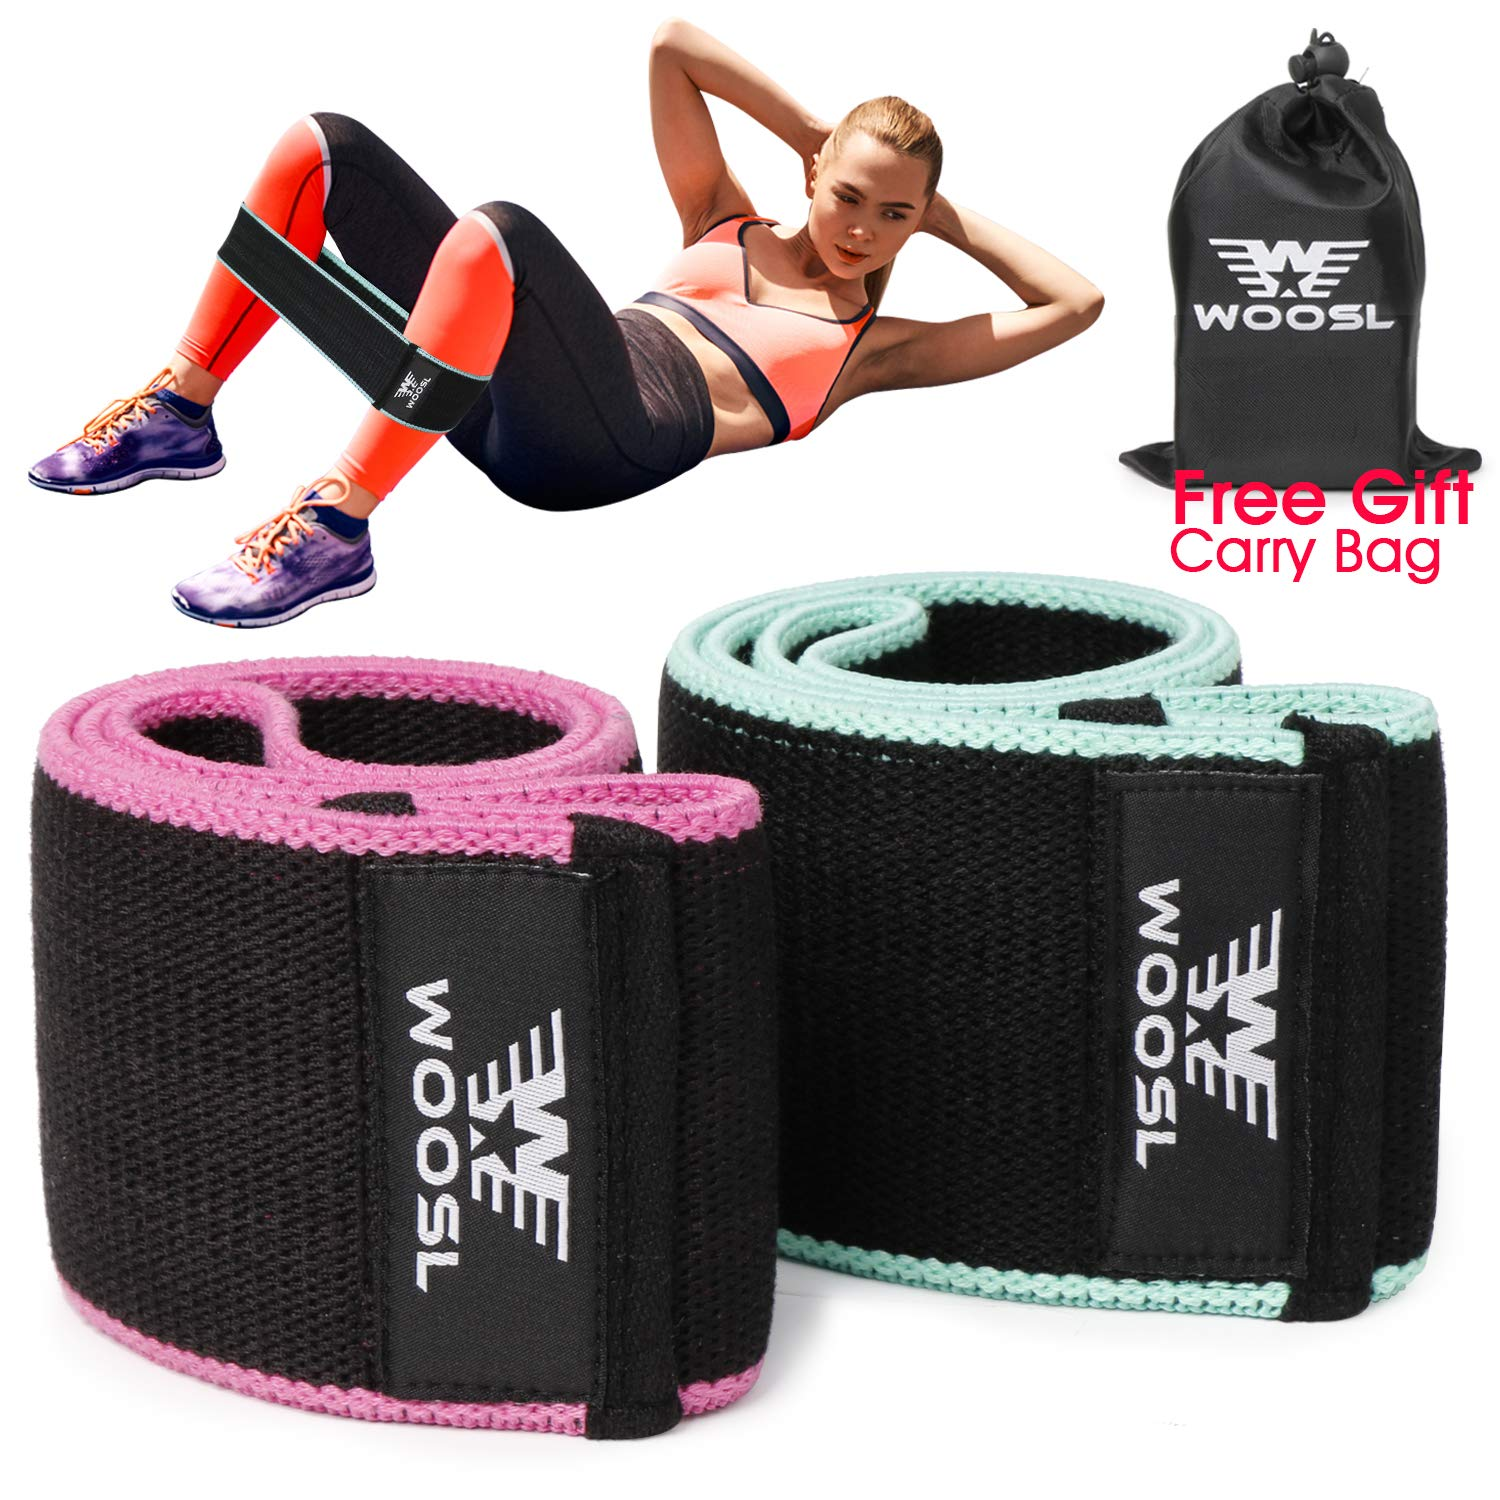 WOOSL Resistance Exercise Bands for Legs and Butt, Hip Bands Booty Bands Workout Wide Bands Sports Fitness Bands Stretch Resistance Loops Band Anti Slip Elastic(2PACK) by WOOSL